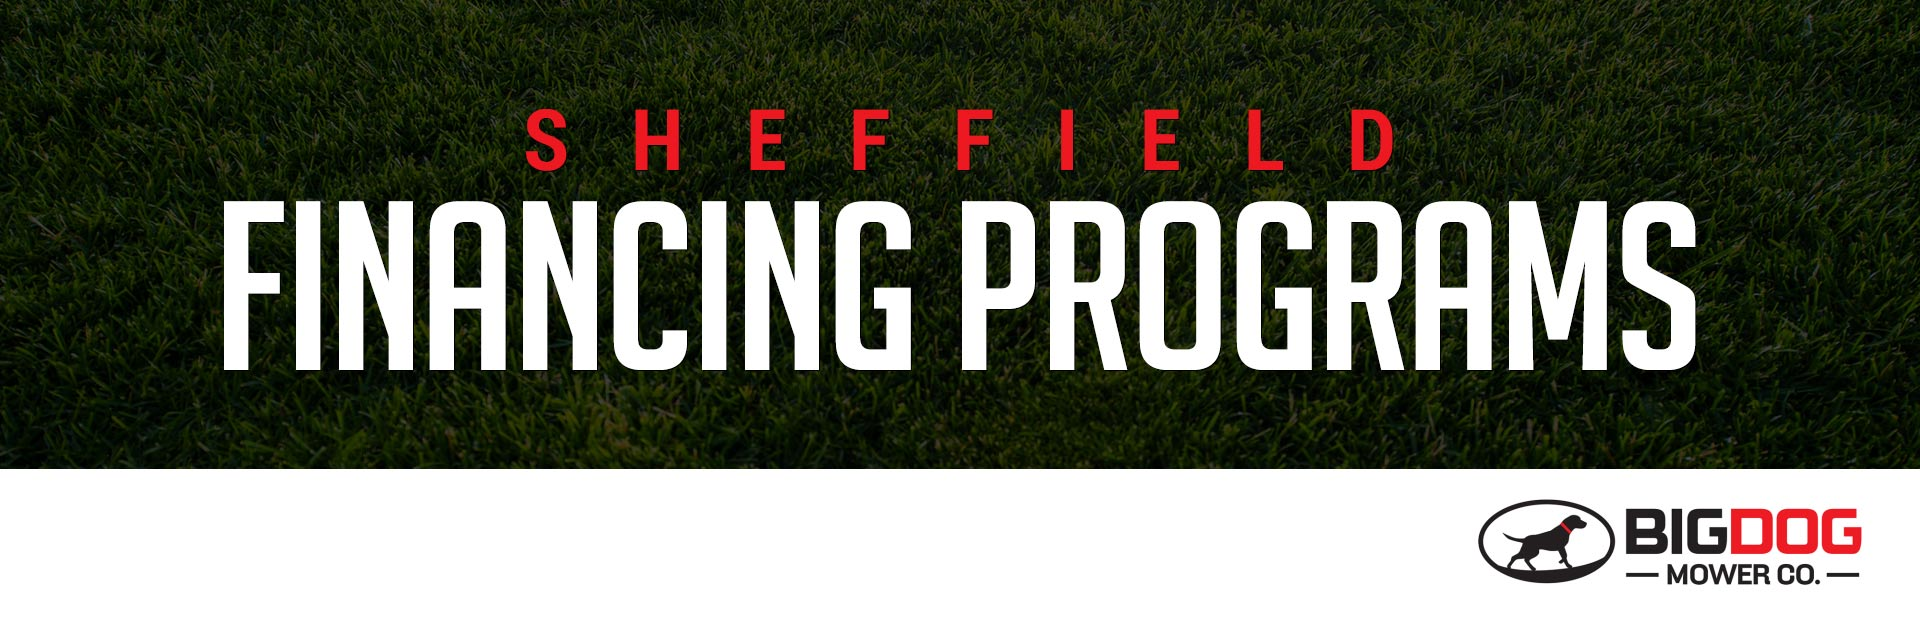 BigDog Mowers: Sheffield Financing